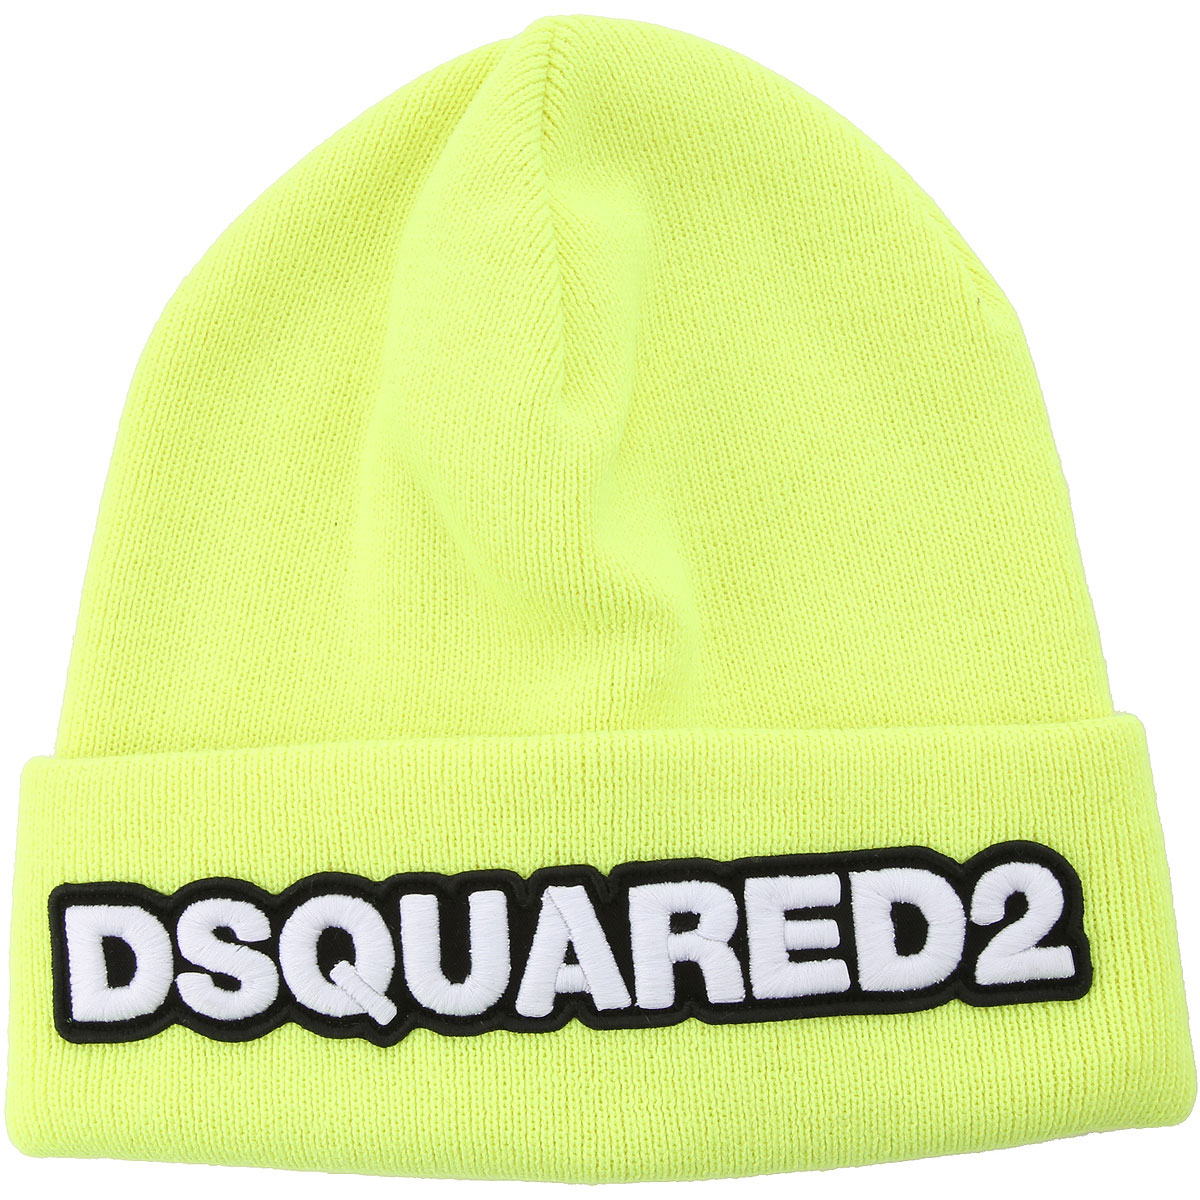 Dsquared2 Hat for Women fluo yellow DK - GOOFASH - Mens HATS